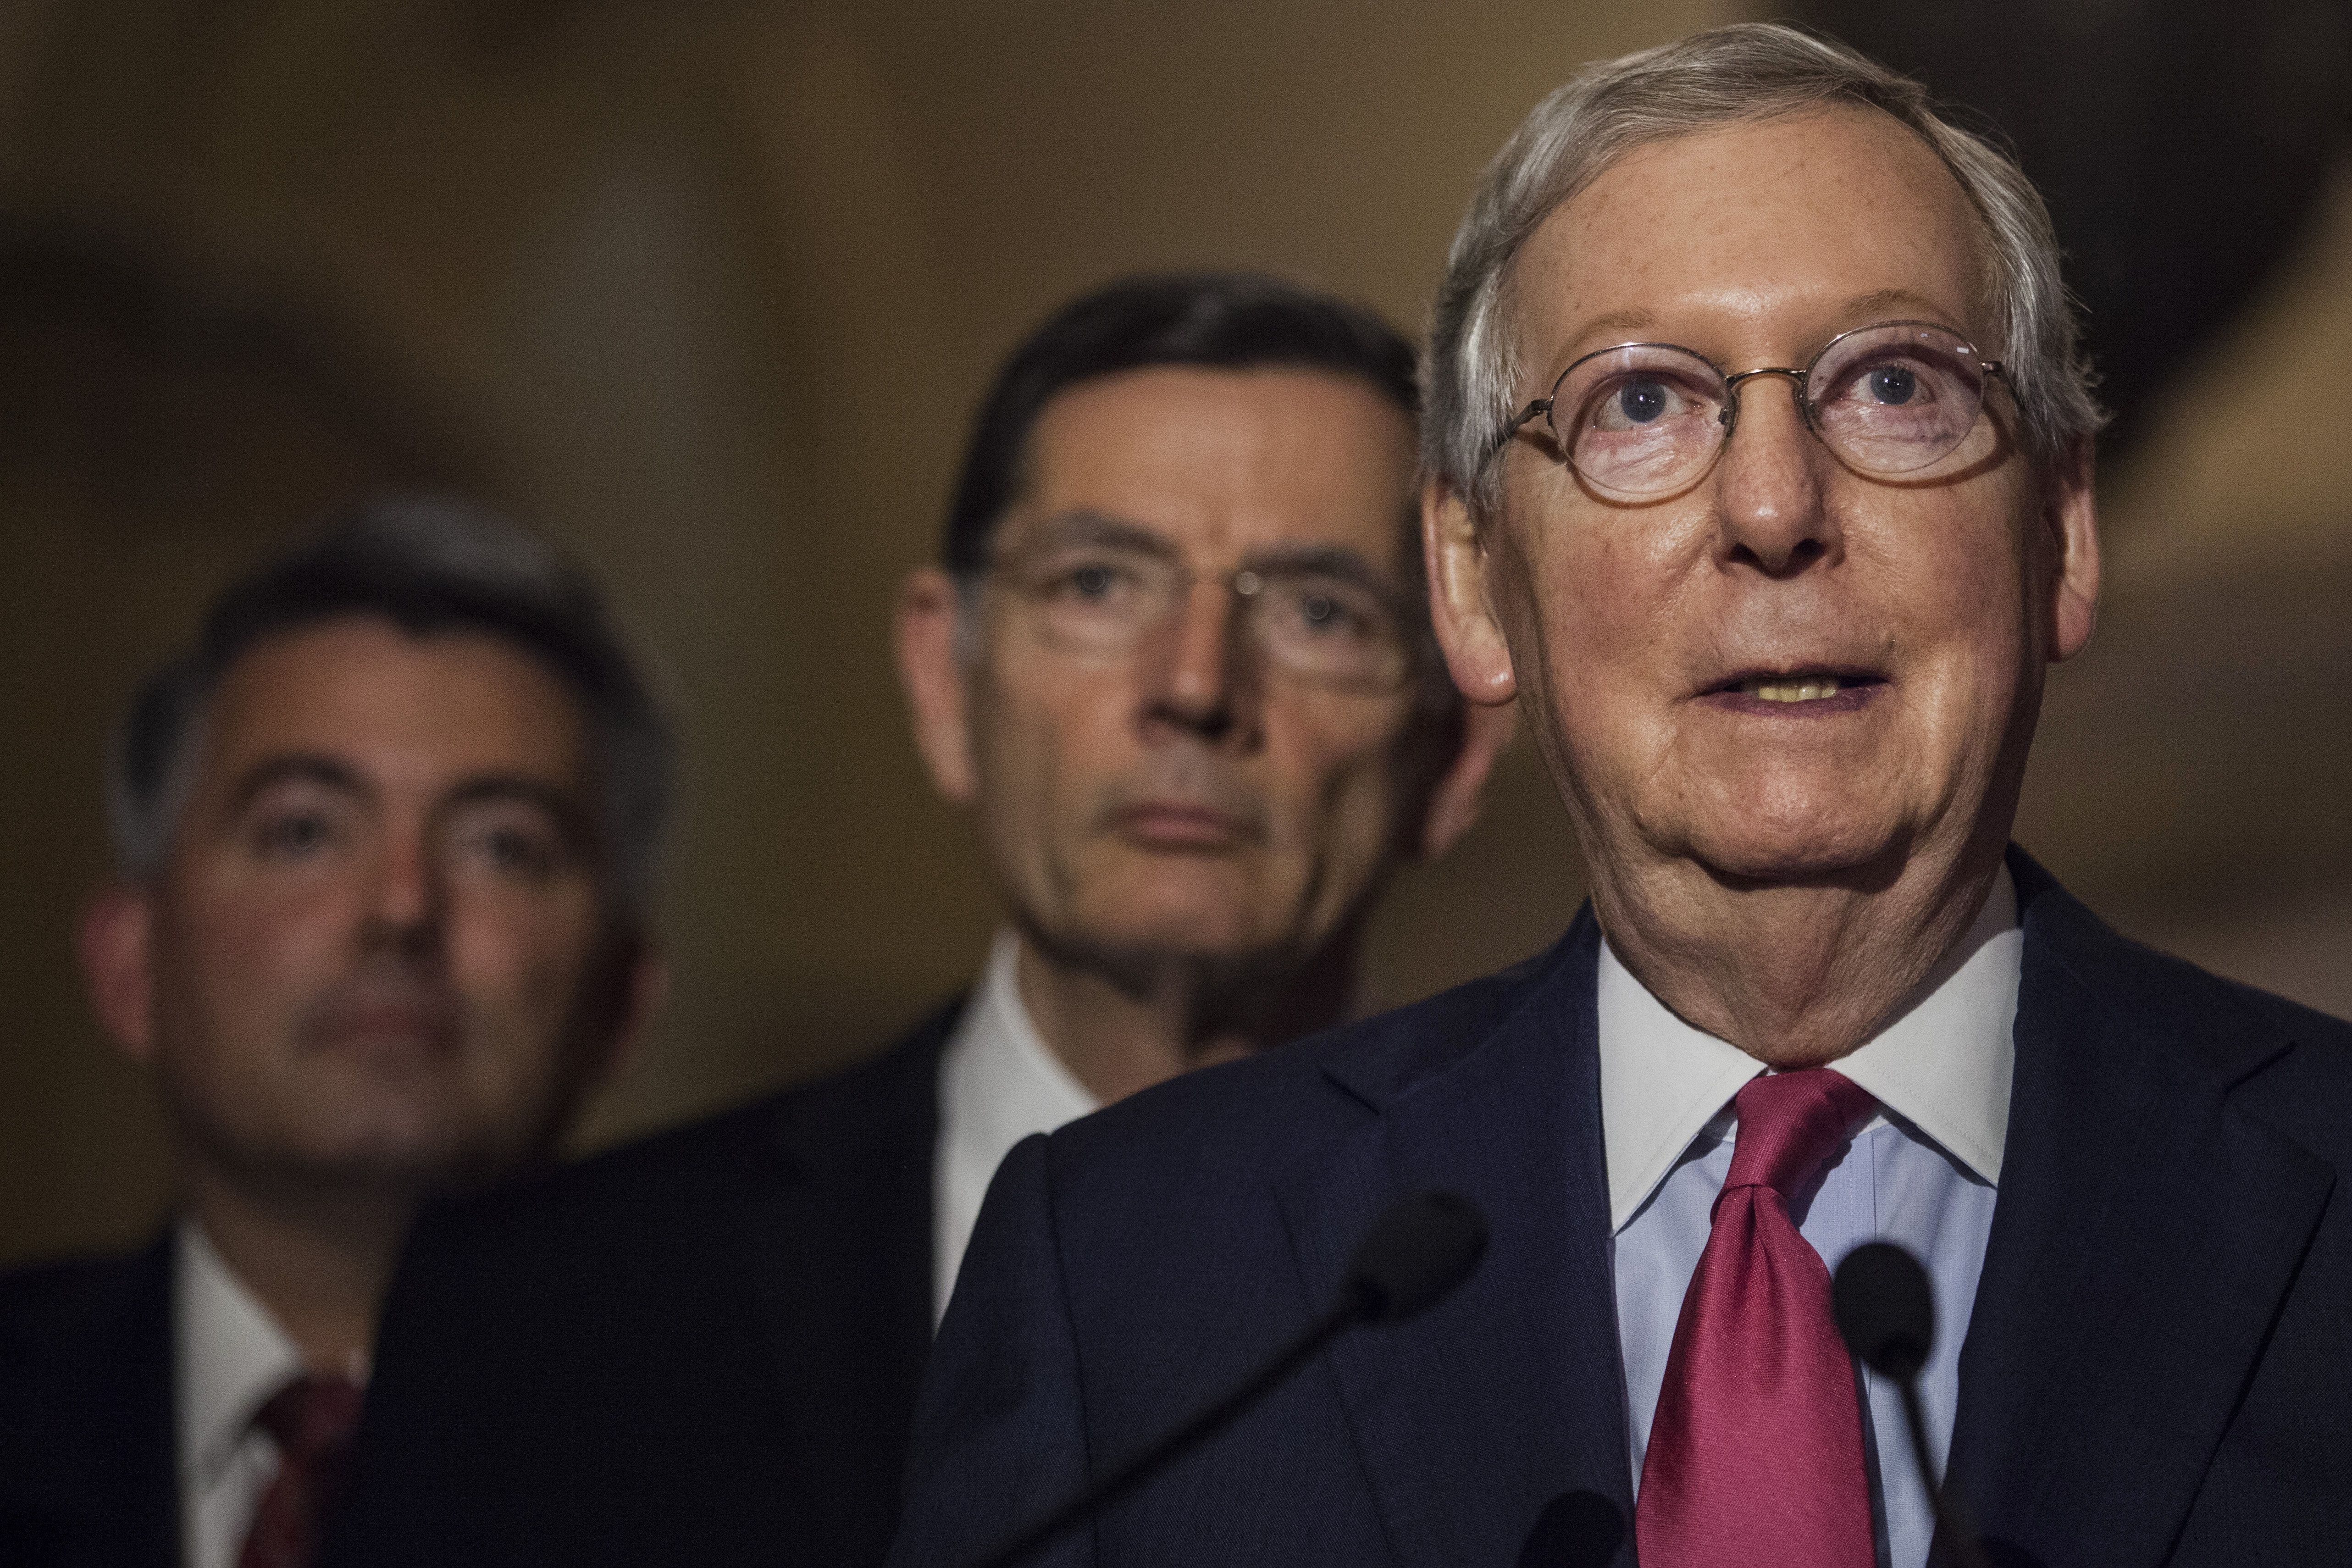 Senate Majority Leader Mitch McConnell, a Republican from Kentucky, speaks during a news conference following a Senate Republican luncheon in Washington, D.C., U.S., on Tuesday, May 16, 2017. U.S. lawmakers from both parties kept up the pressure on Donald Trump over the sudden firing of James Comey, demanding that recordings the president suggested he may have made of his meetings with the former FBI director be preserved and handed over to lawmakers. Photographer: Zach Gibson/Bloomberg via Getty Images